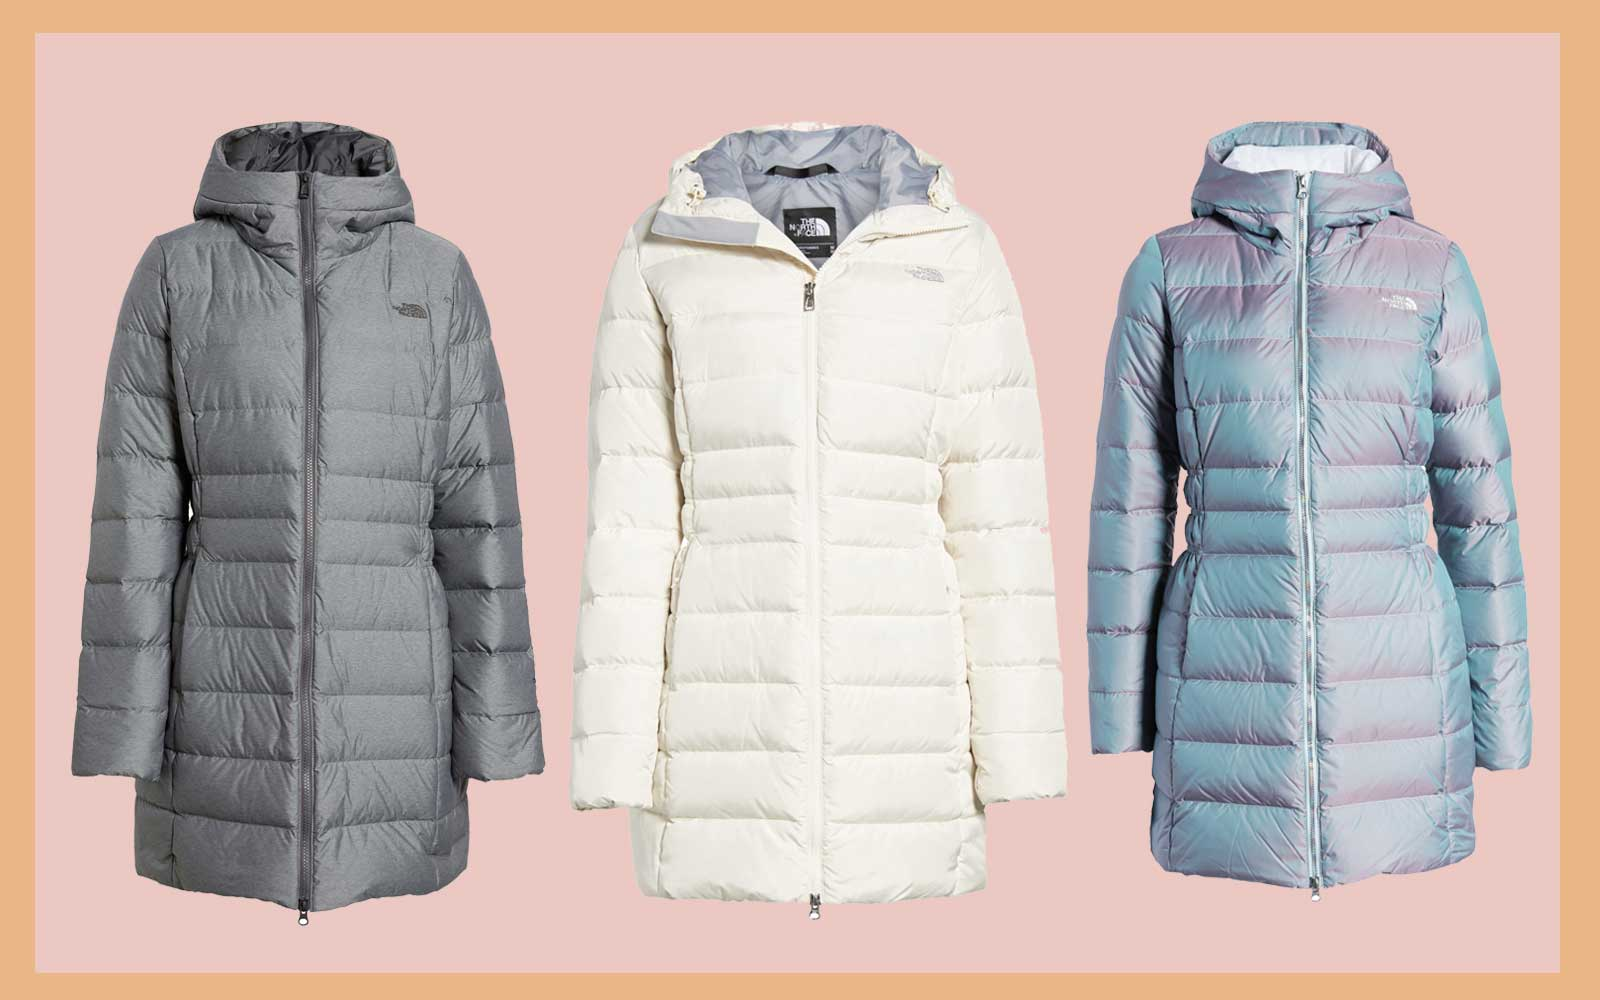 Grey, White, and Iridescent Blue North Face Women's Parkas